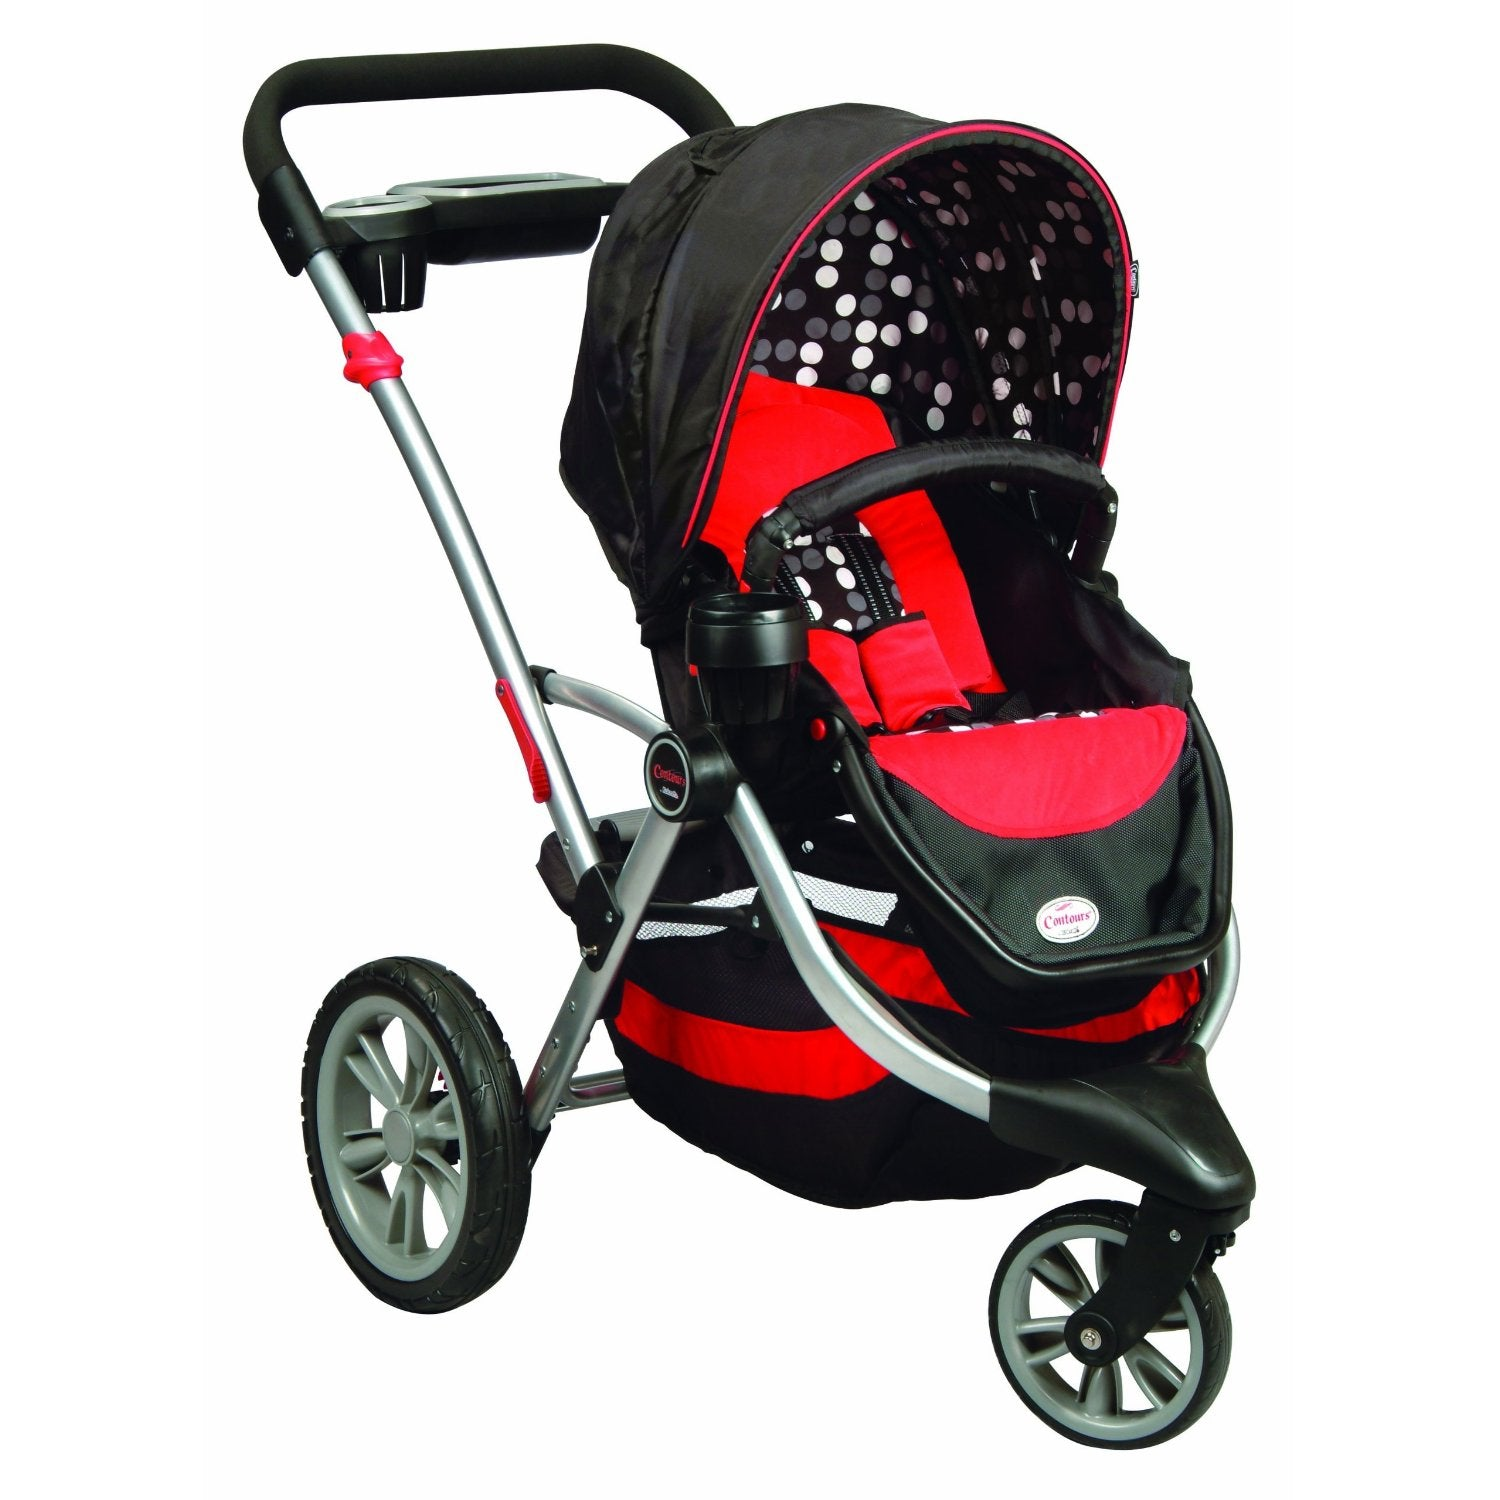 Stroller, Affordable Baby Strollers Can Be A Fun